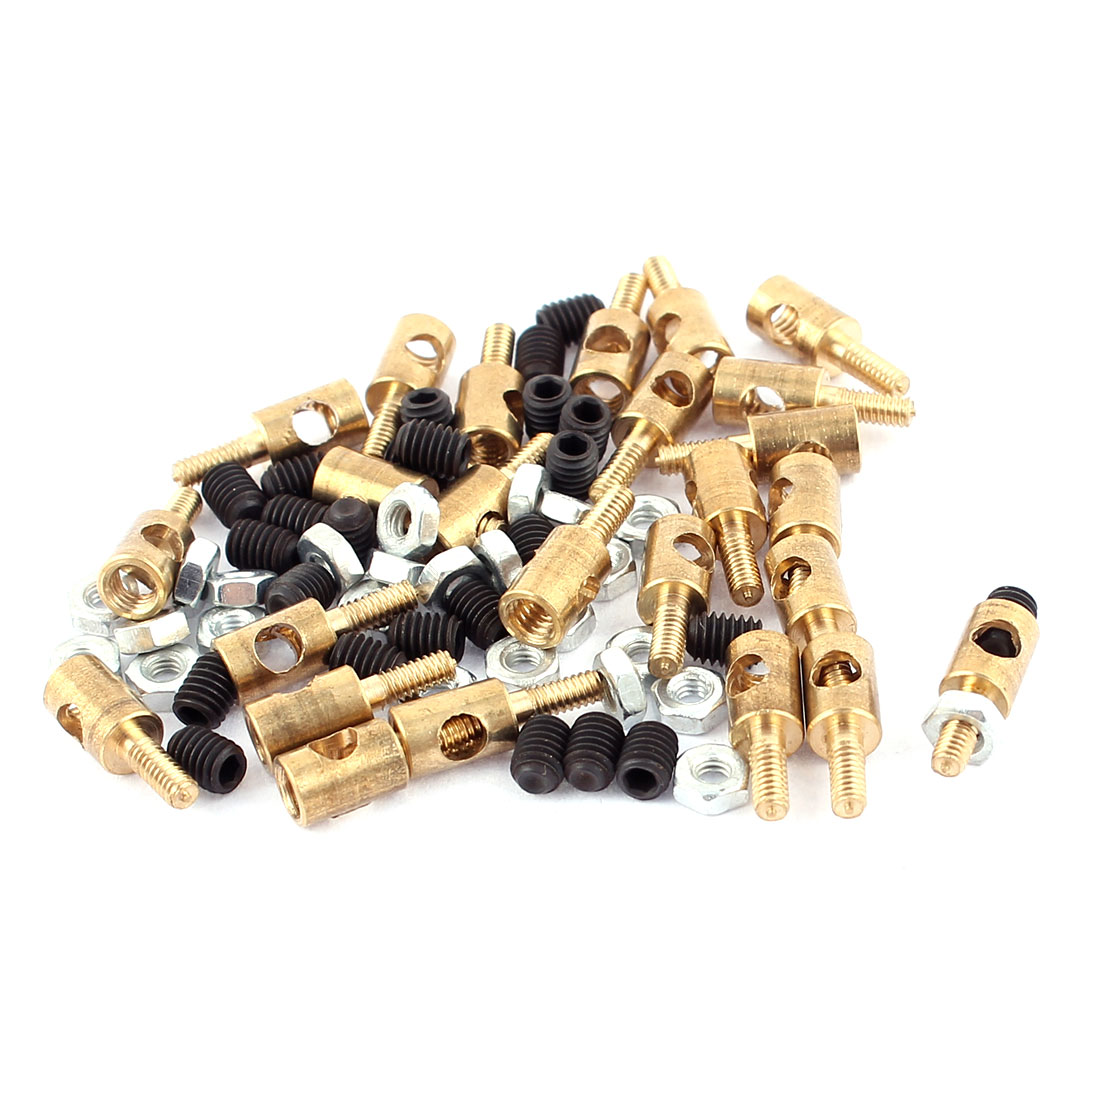 25pcs 4mmx2.5mm Pushrod Linkage Stopper Metal for RC Model w Nuts